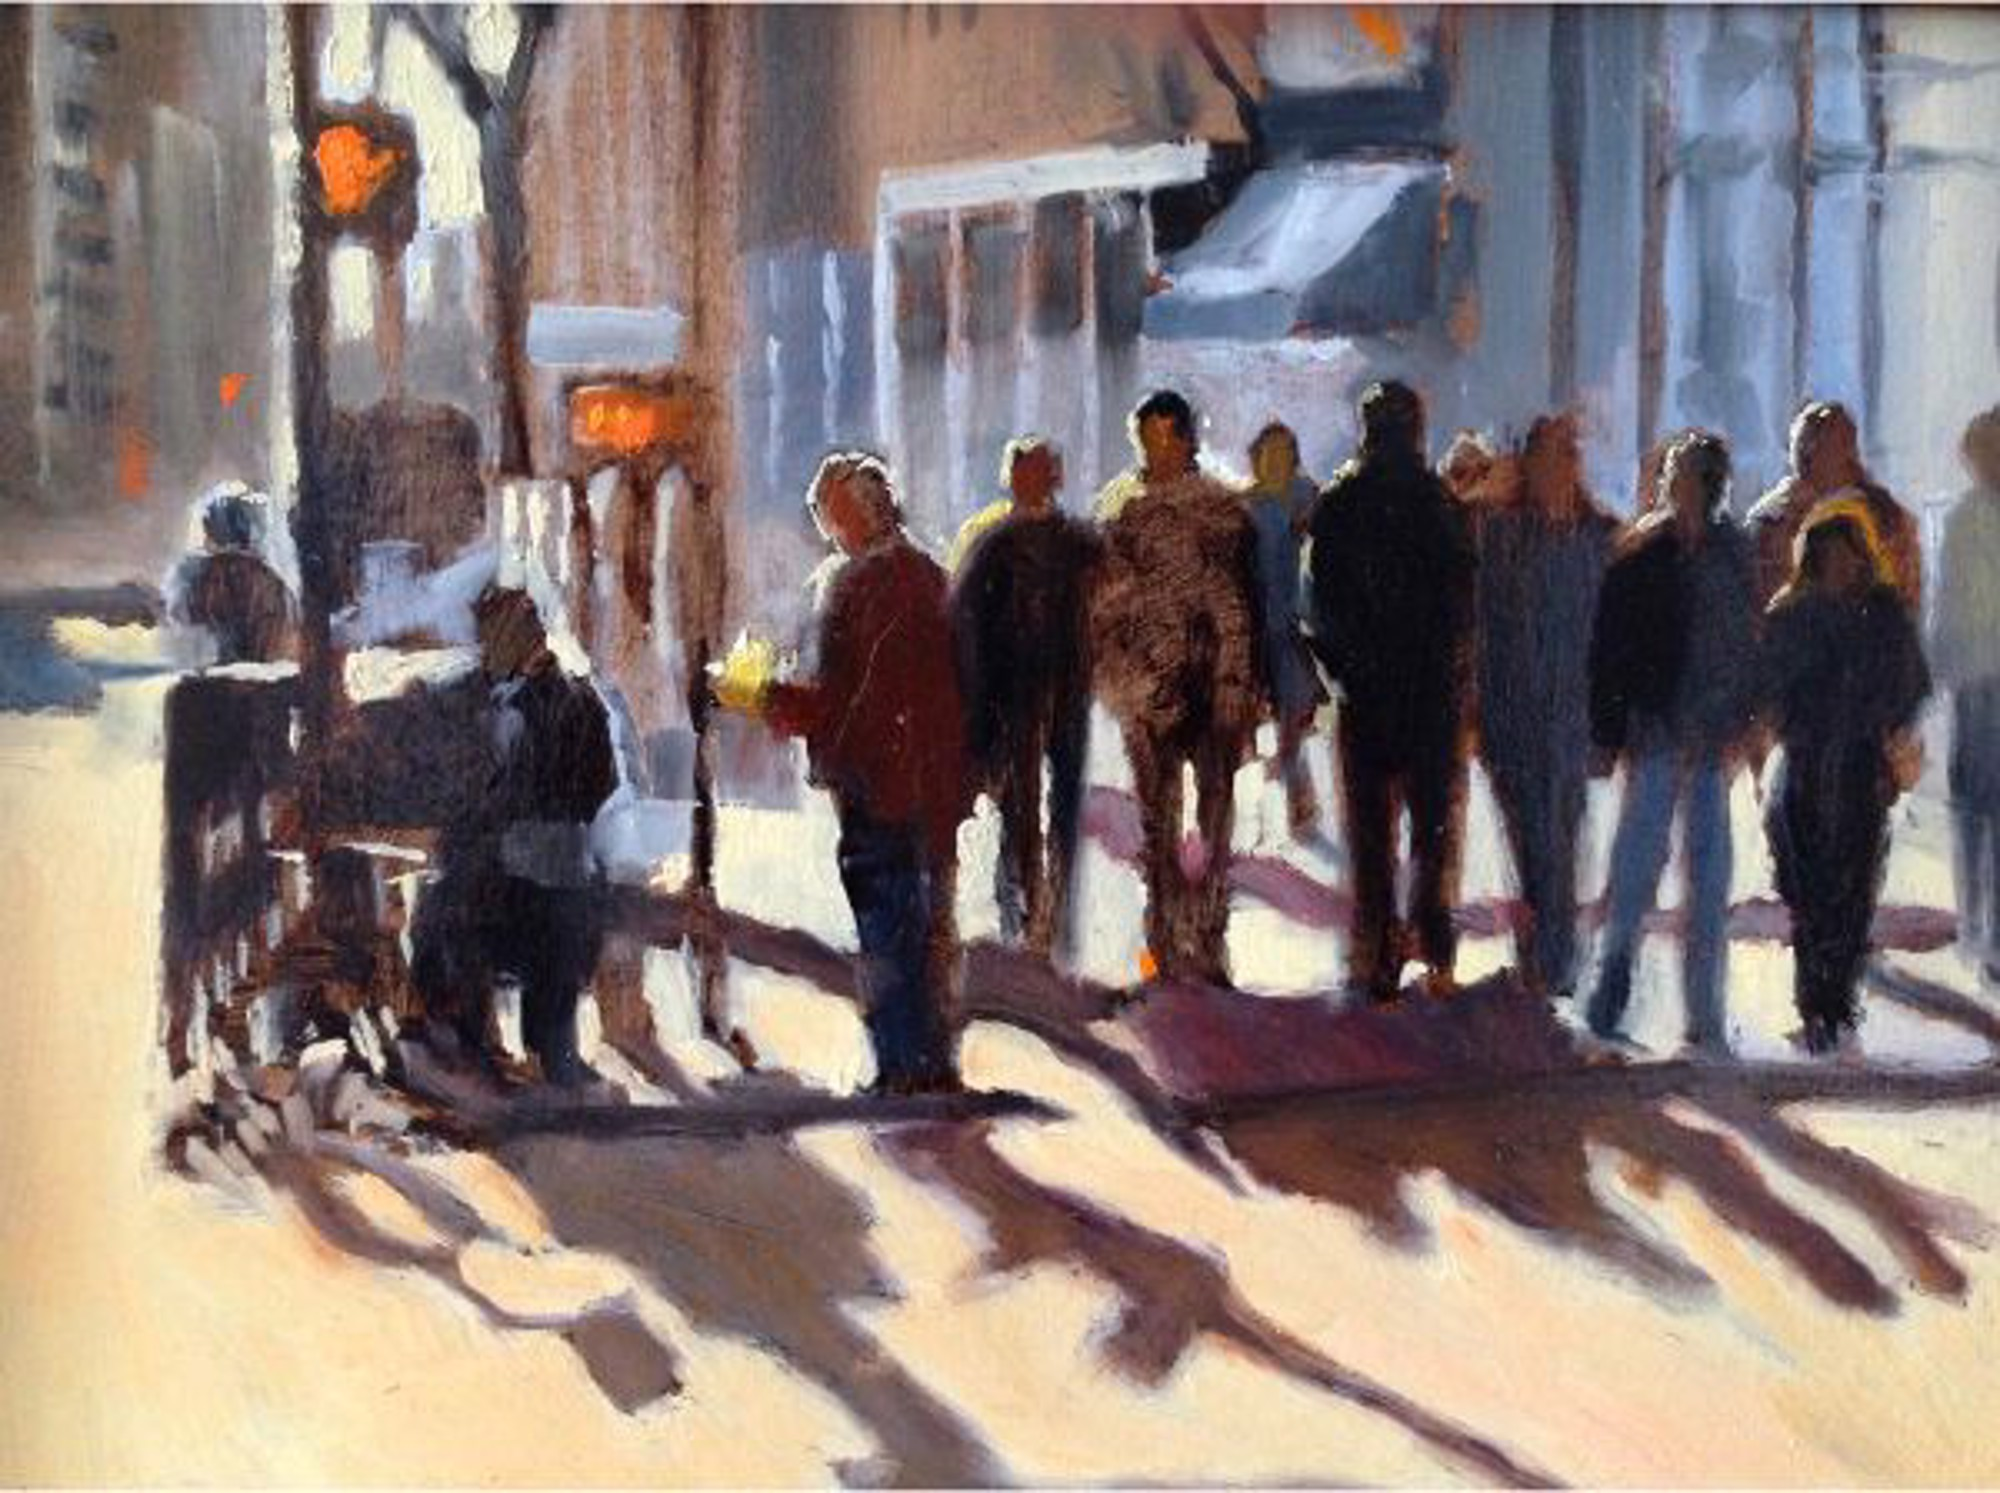 Sunny Day on 5th by Betsy Havens